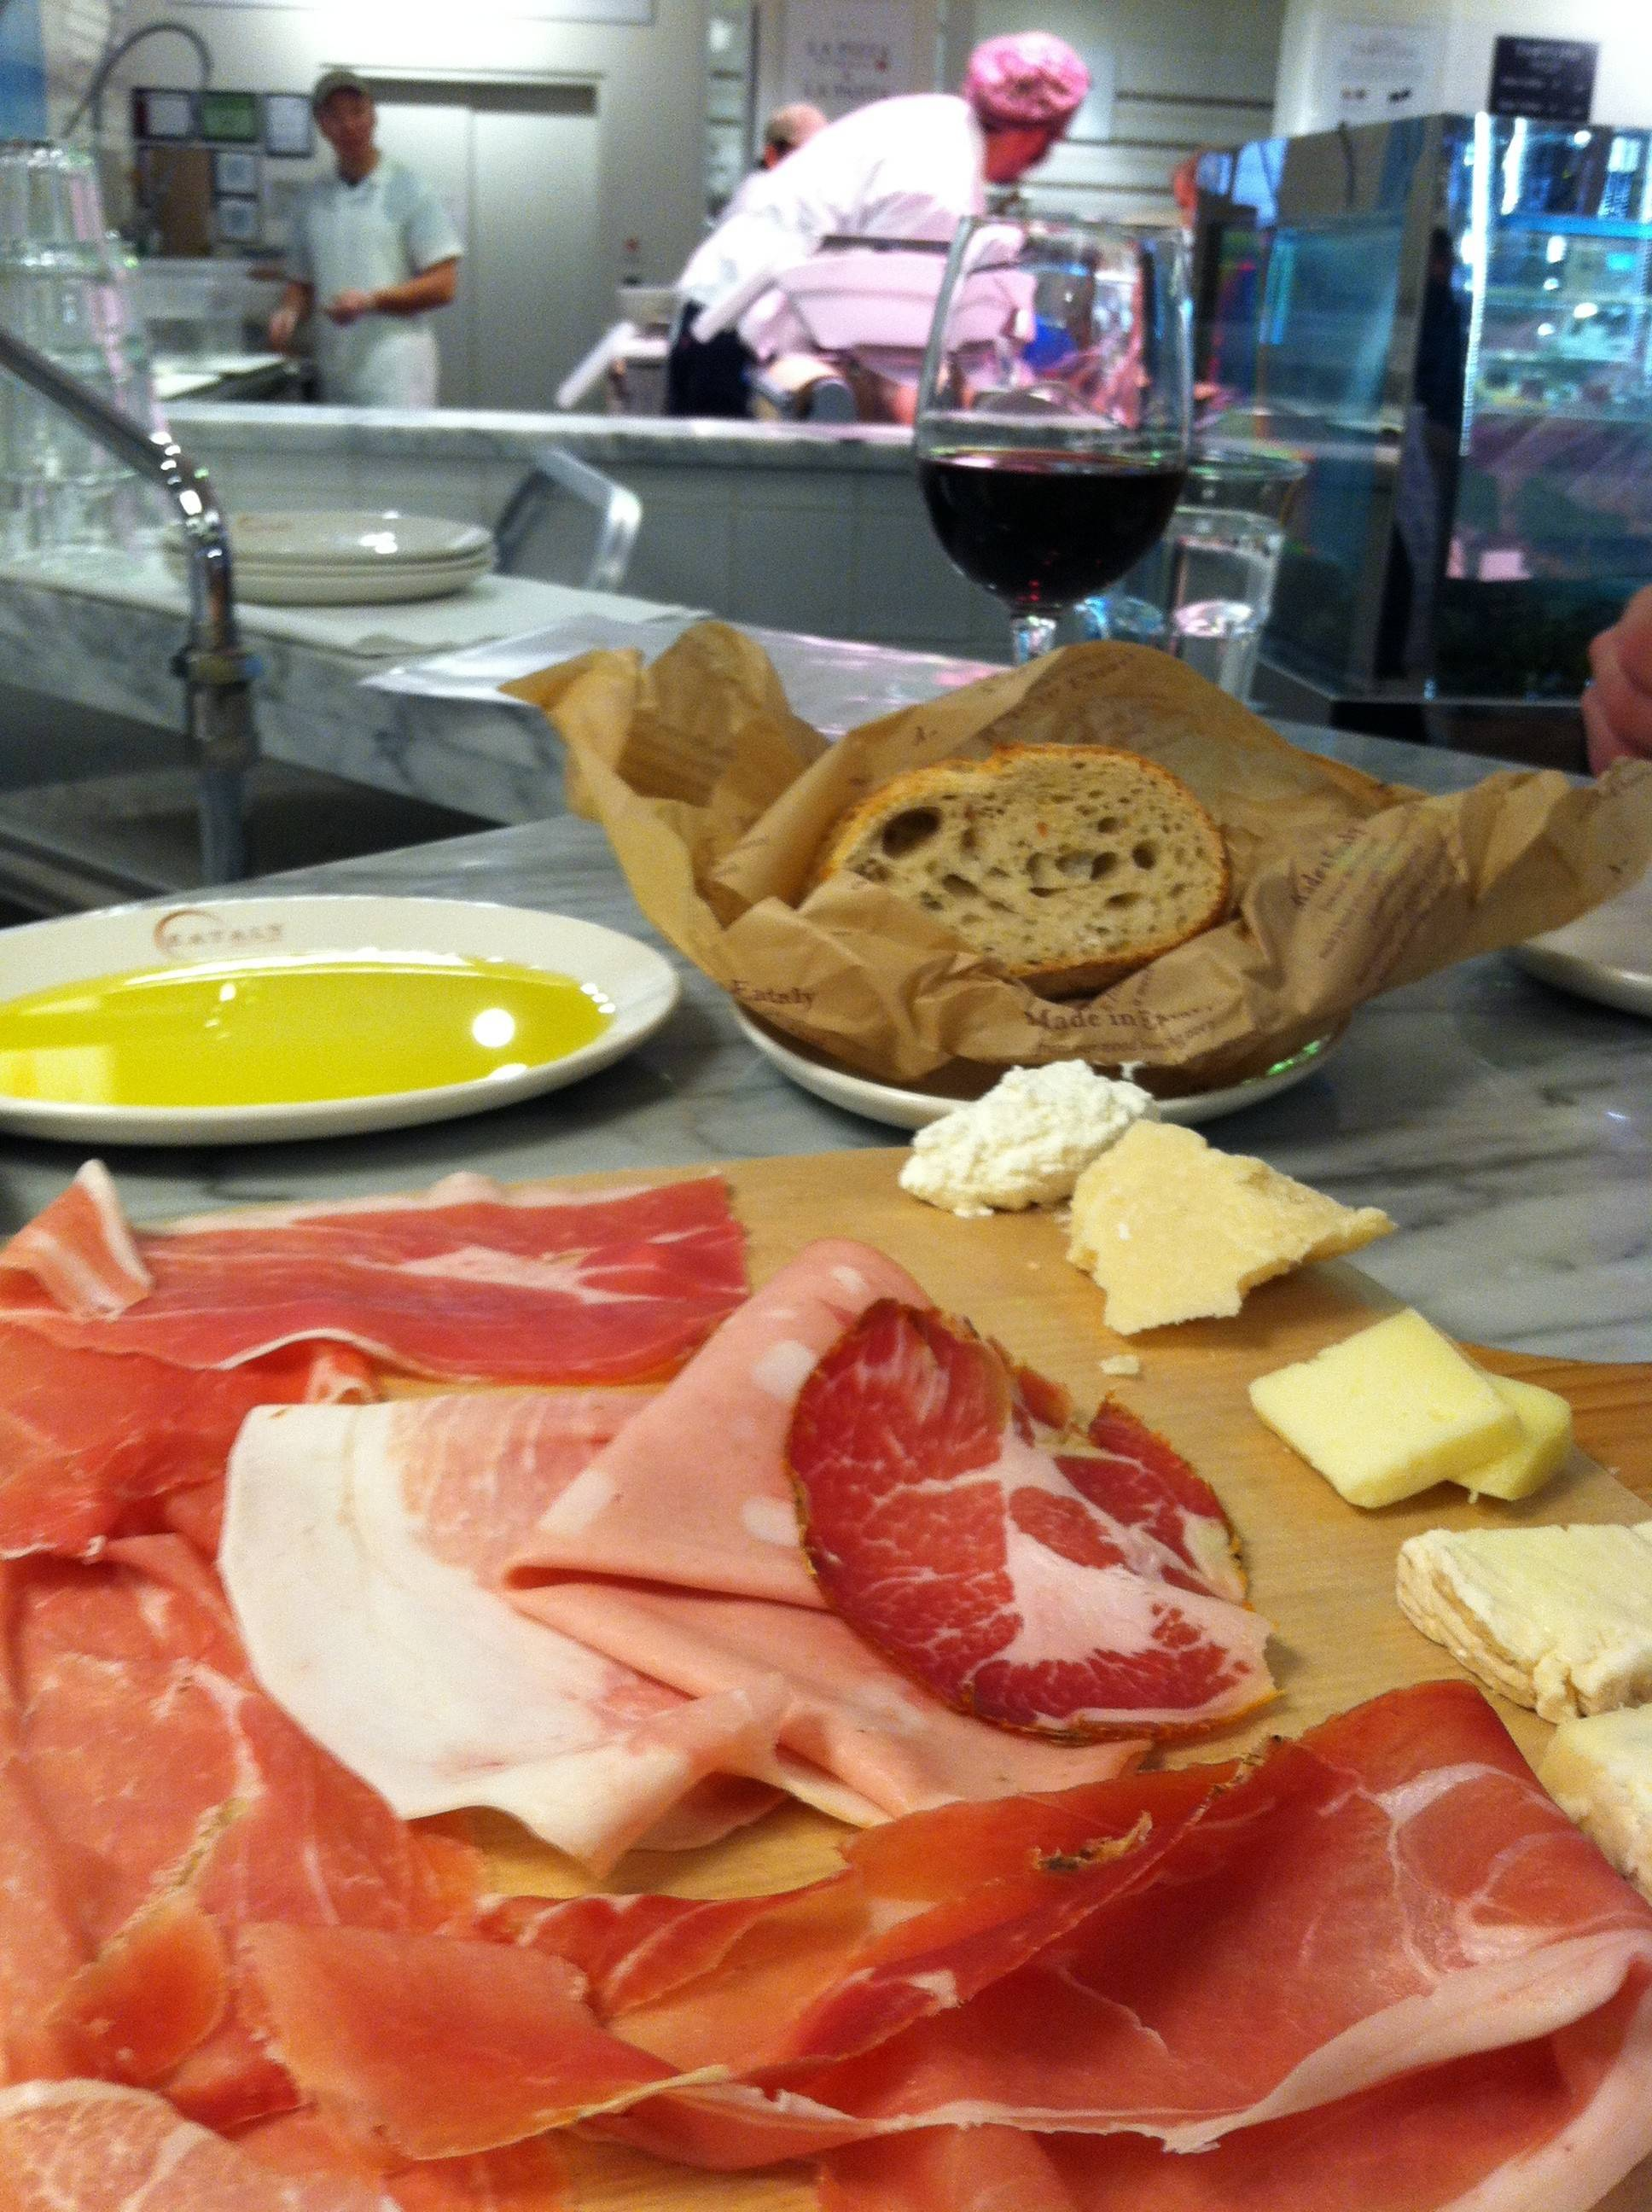 Refuel for more shopping with a glass of wine and a proscuitto platter at Eataly in Chicago.